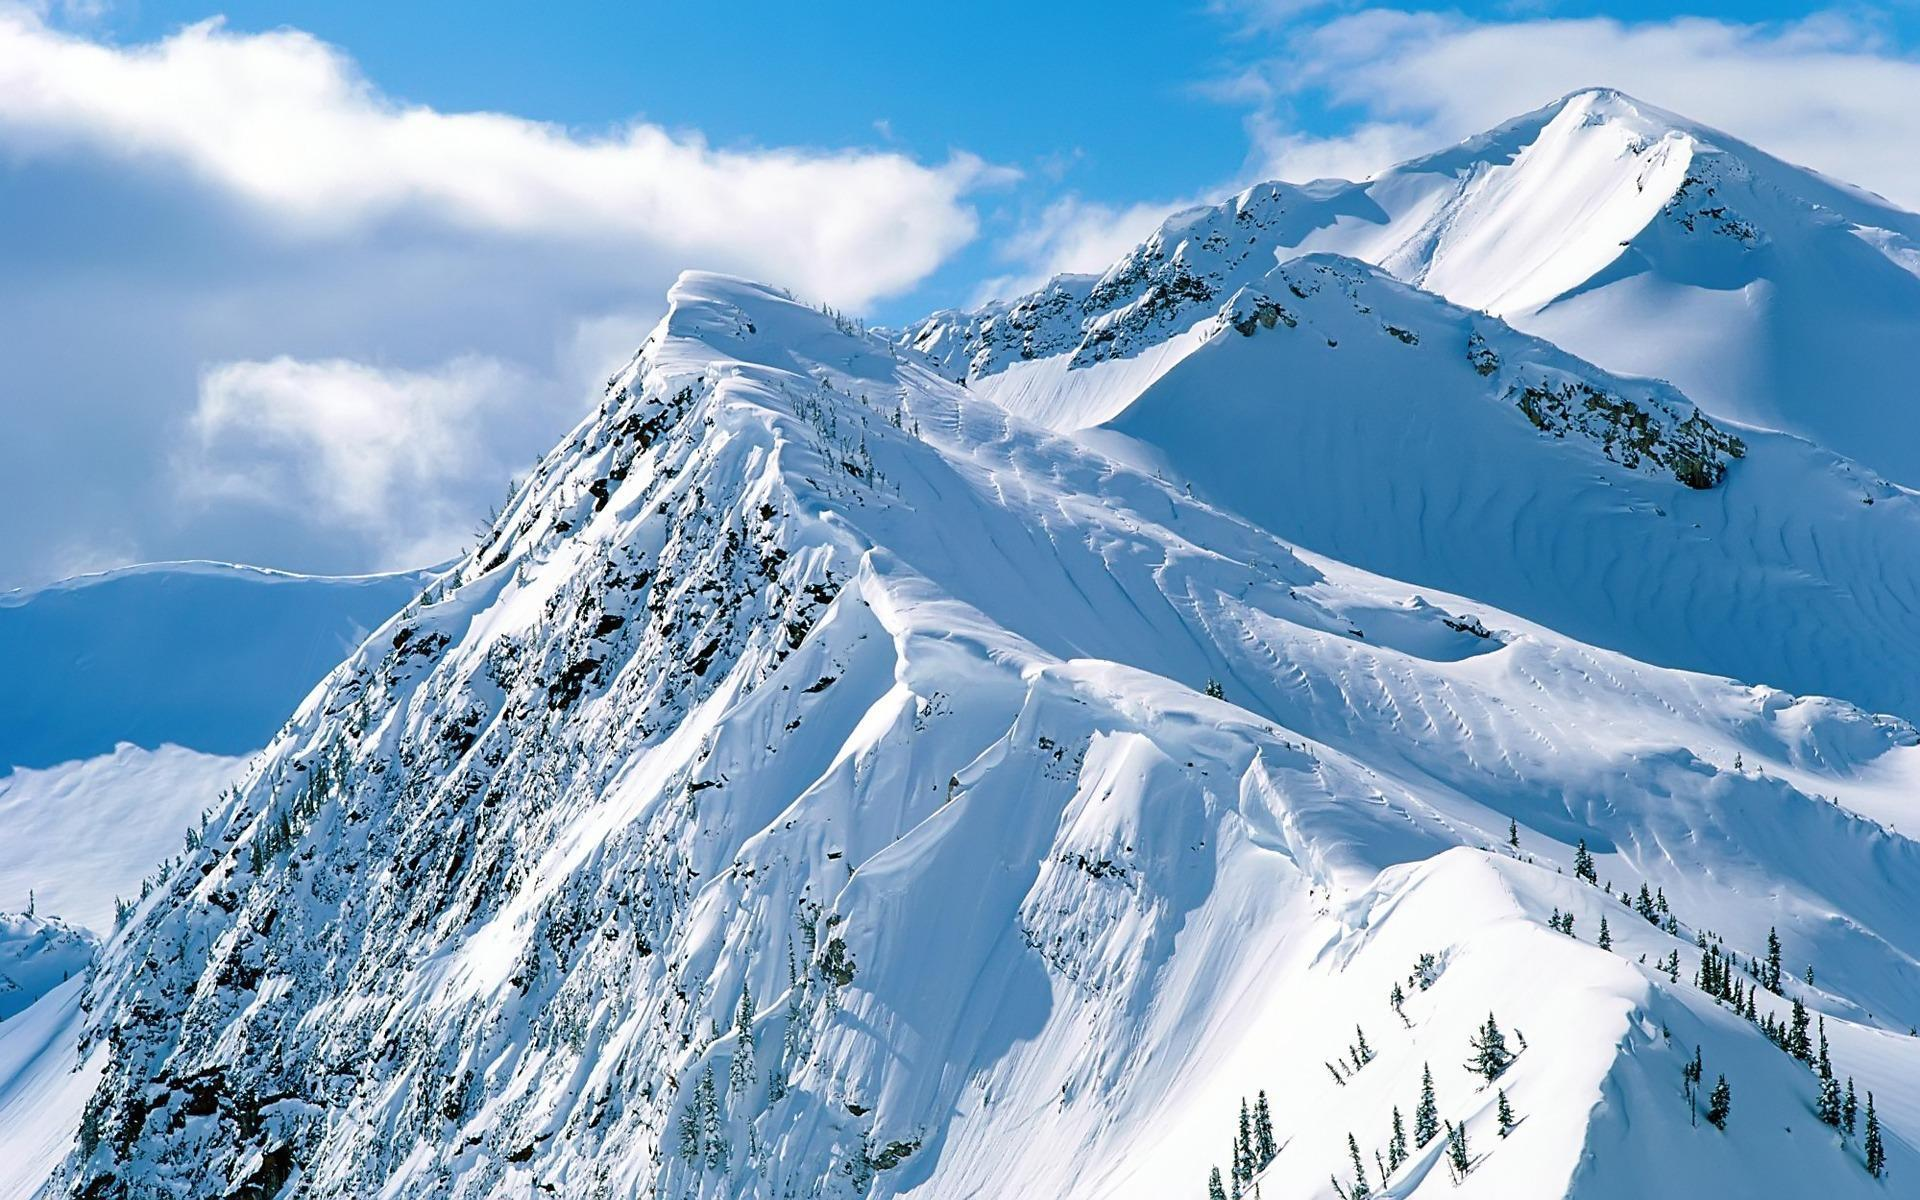 Snow Mountain Wallpapers Photos 45069 HD Pictures